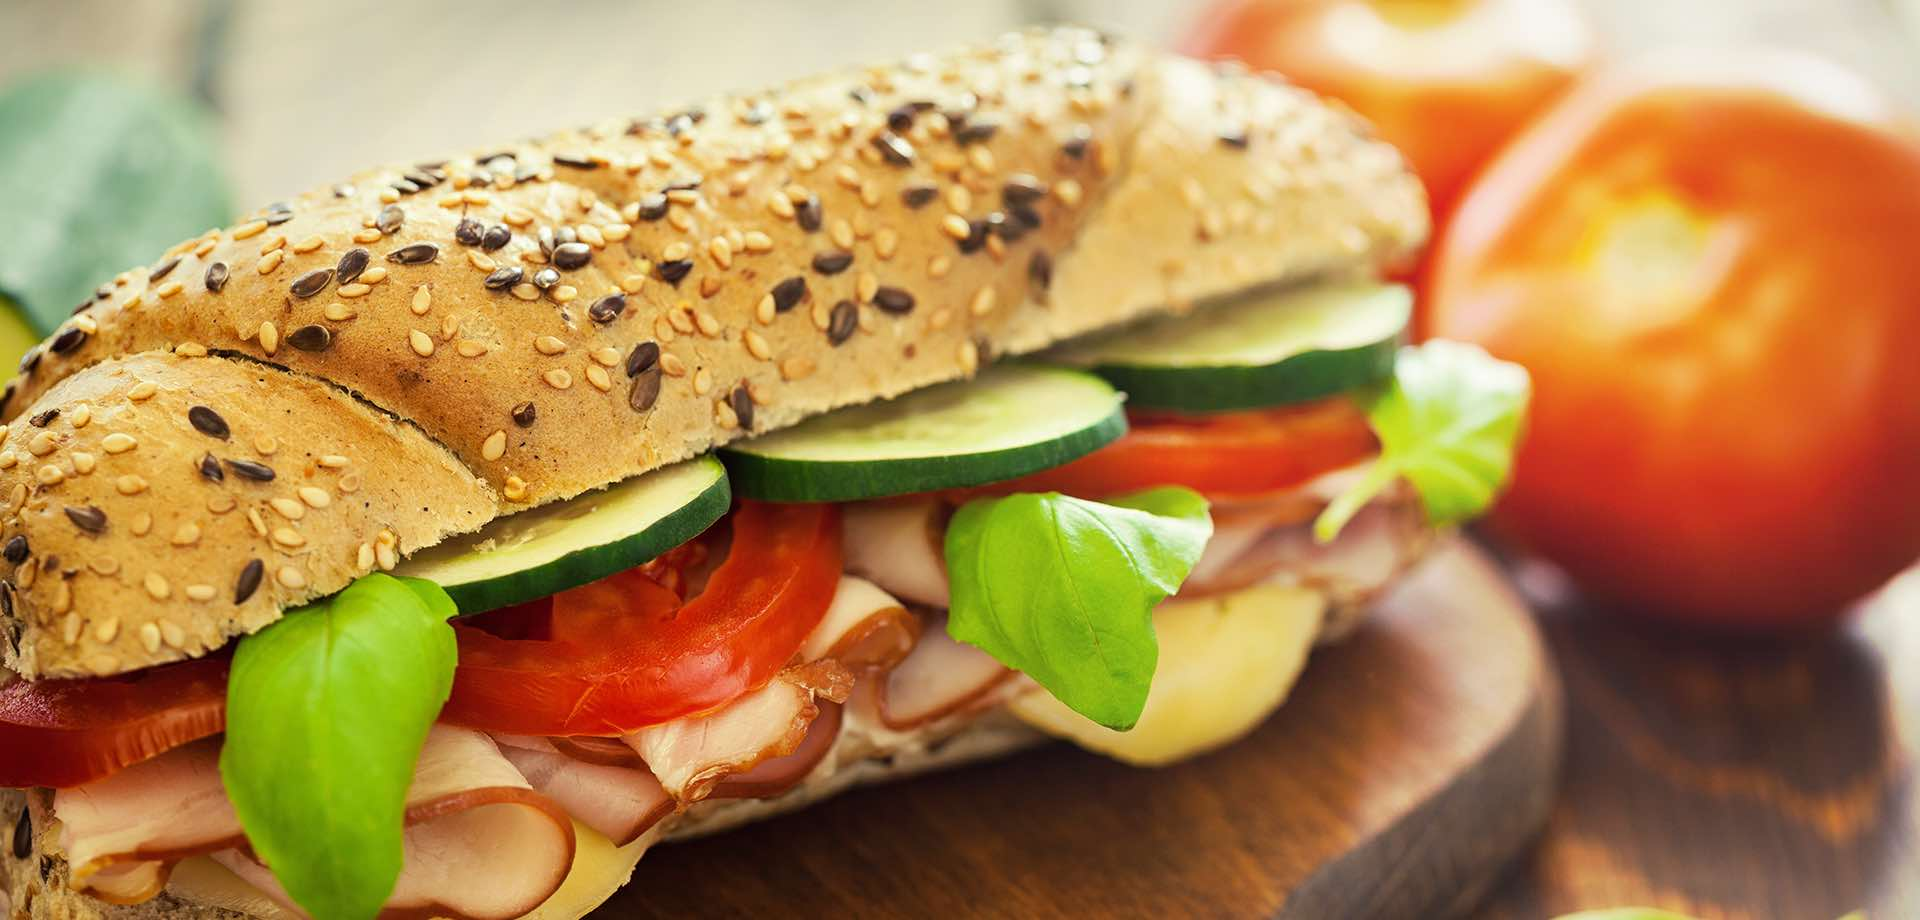 grilled subs